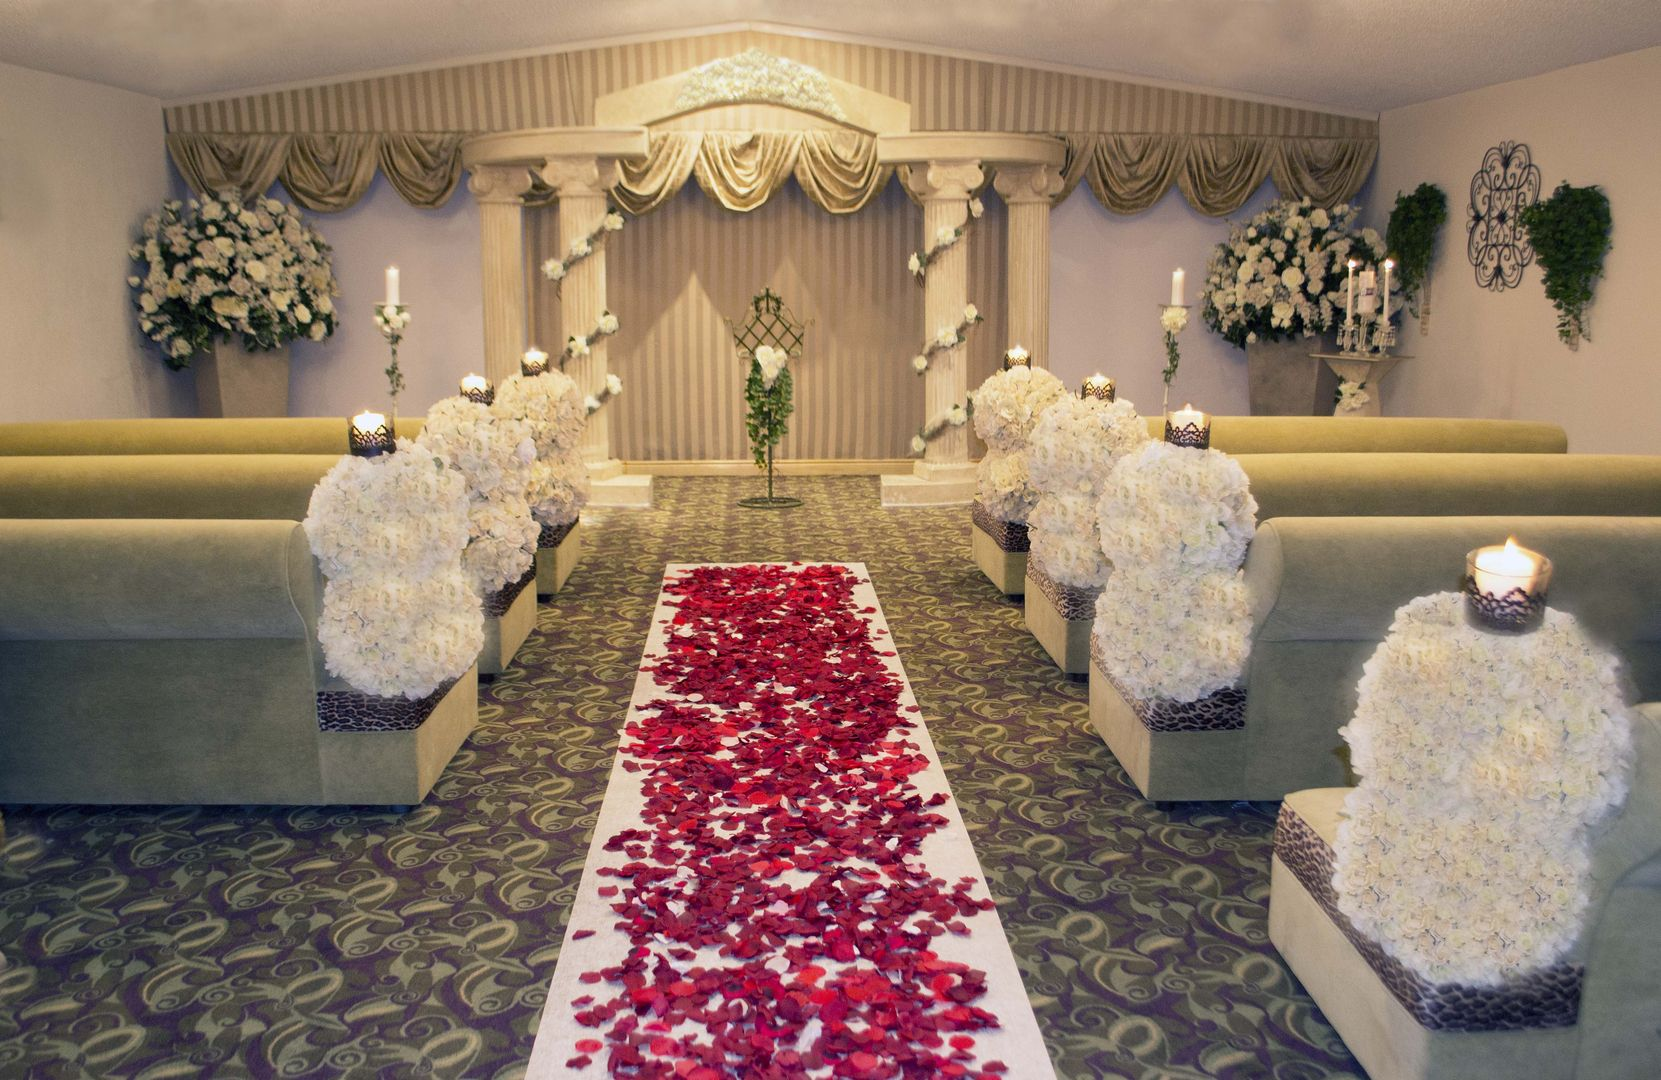 wedding chapel las vegas Belleza Wedding Chapel Las Vegas is one of the most romantic